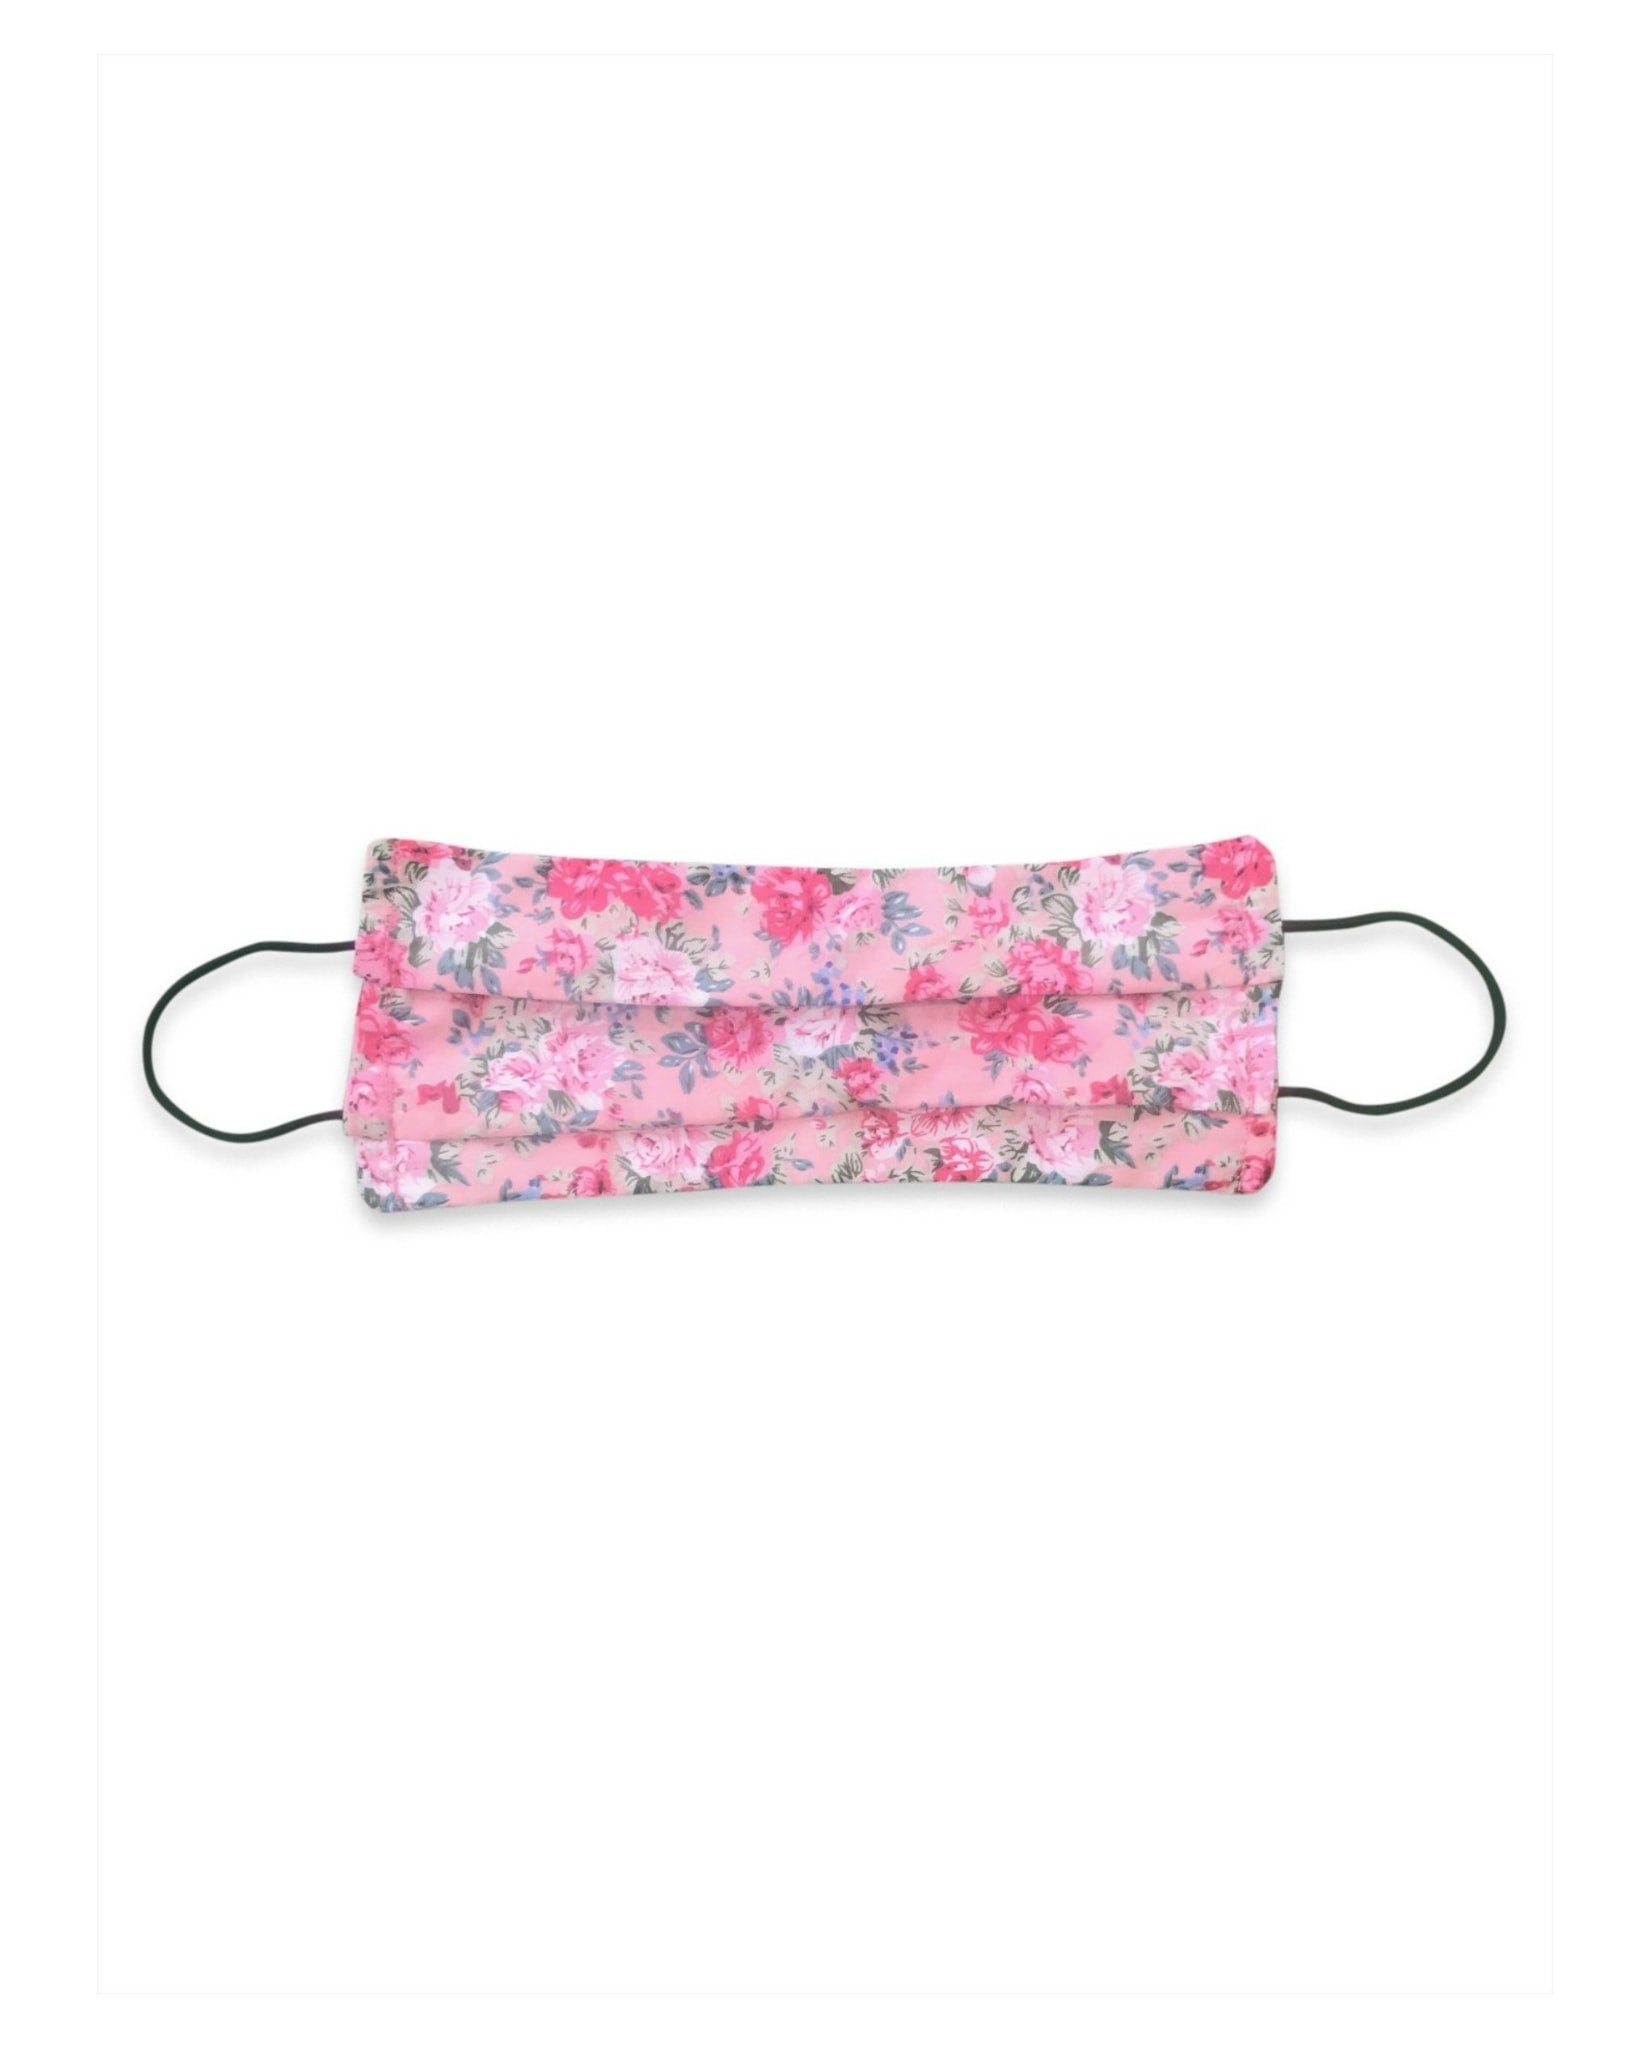 Protective Face Mask Pink Dainty Floral